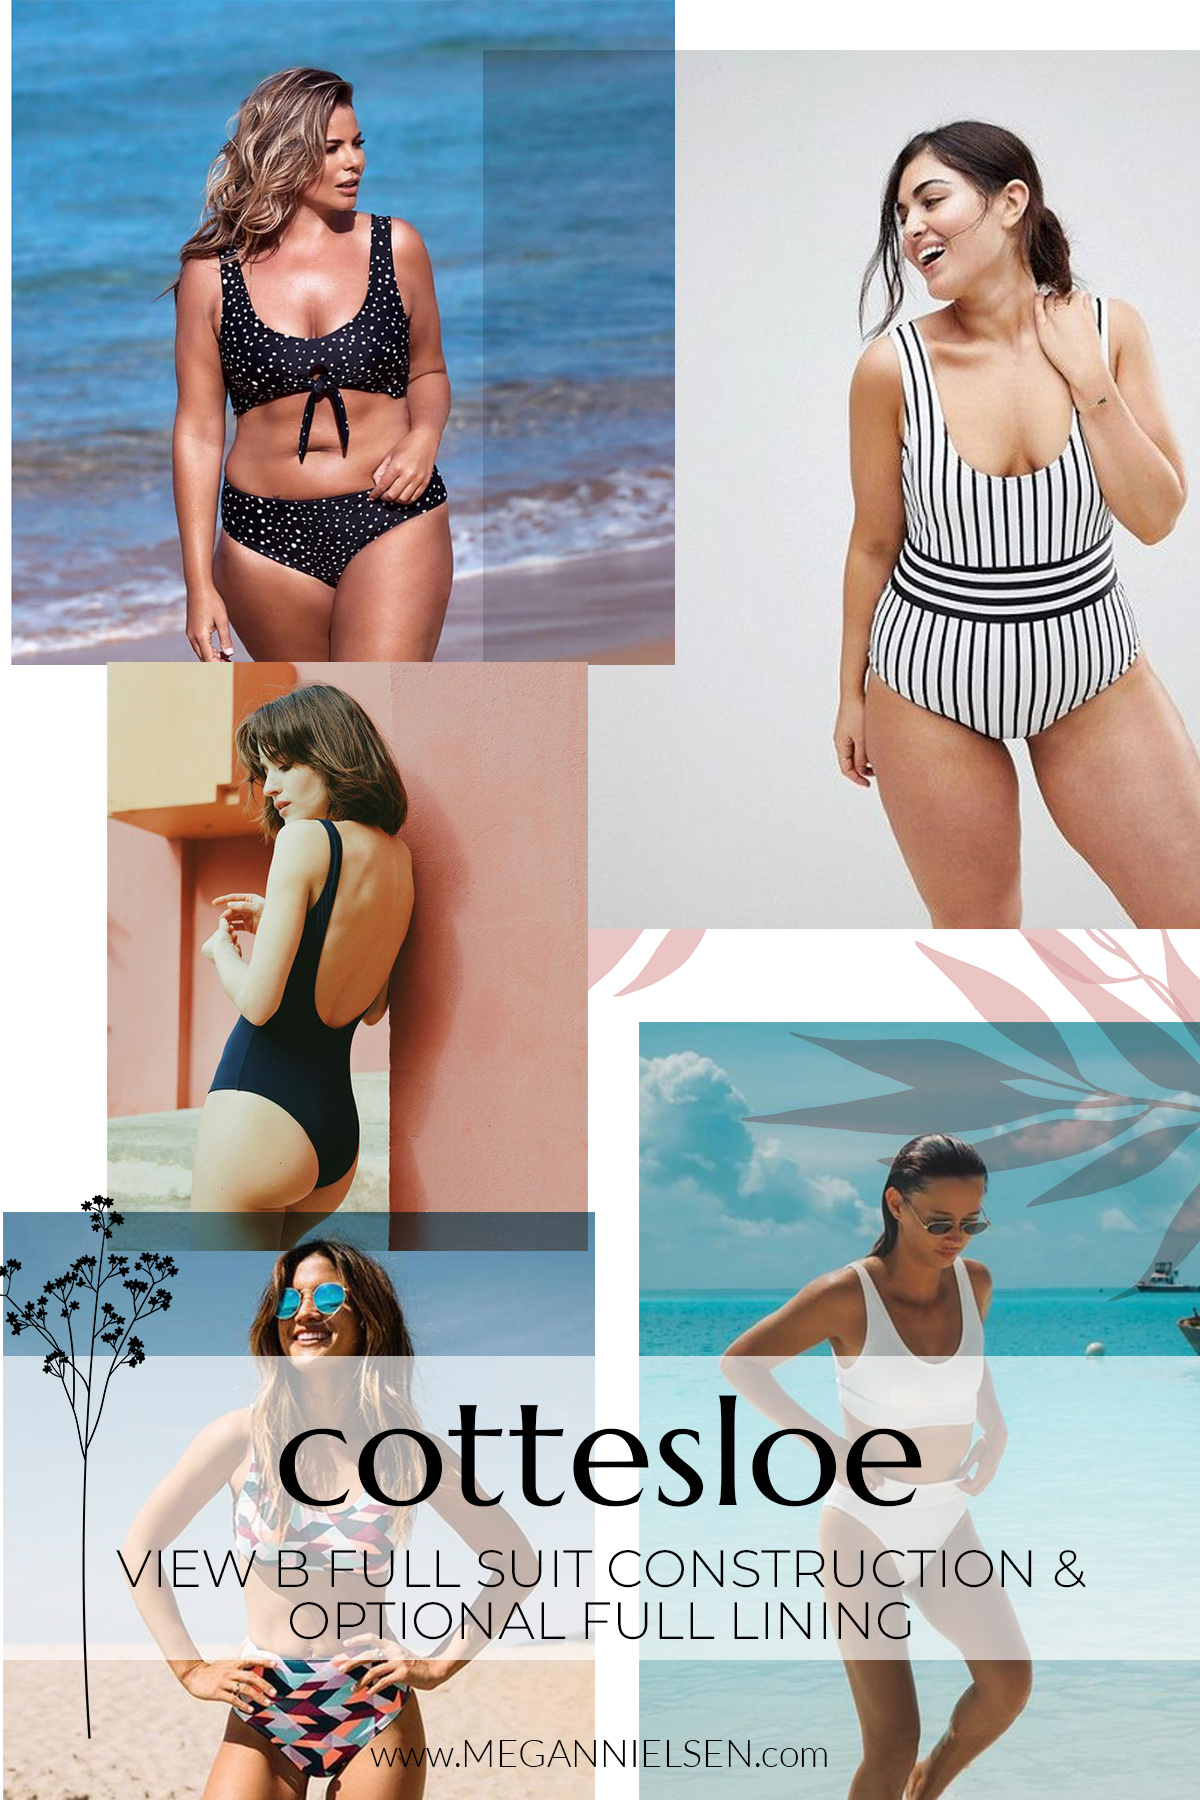 Ideas & Inspiration behind the Cottesloe pattern by Megan Nielsen Patterns